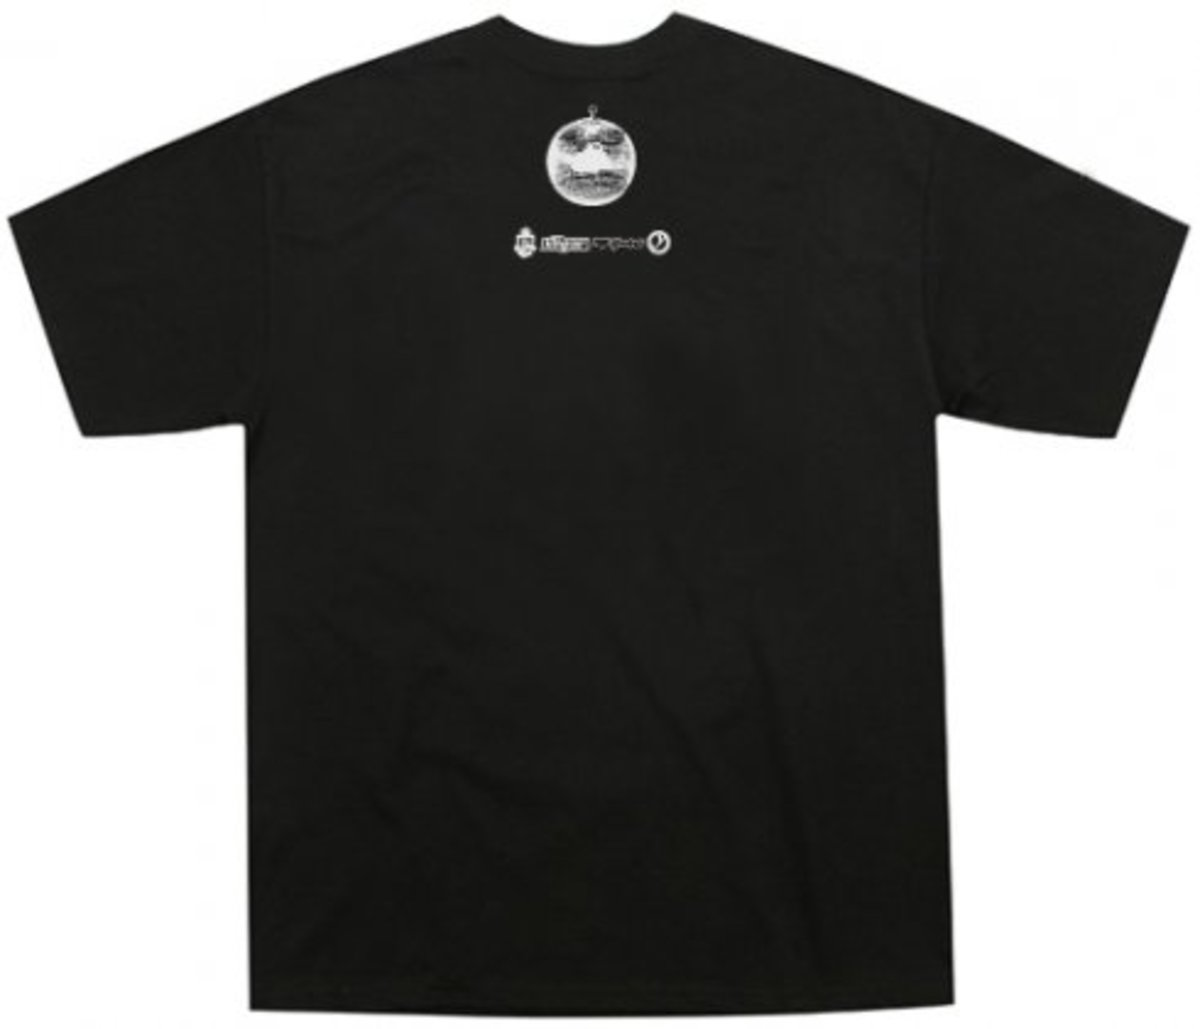 Stussy x Love Saves the Day T-Shirt - 1